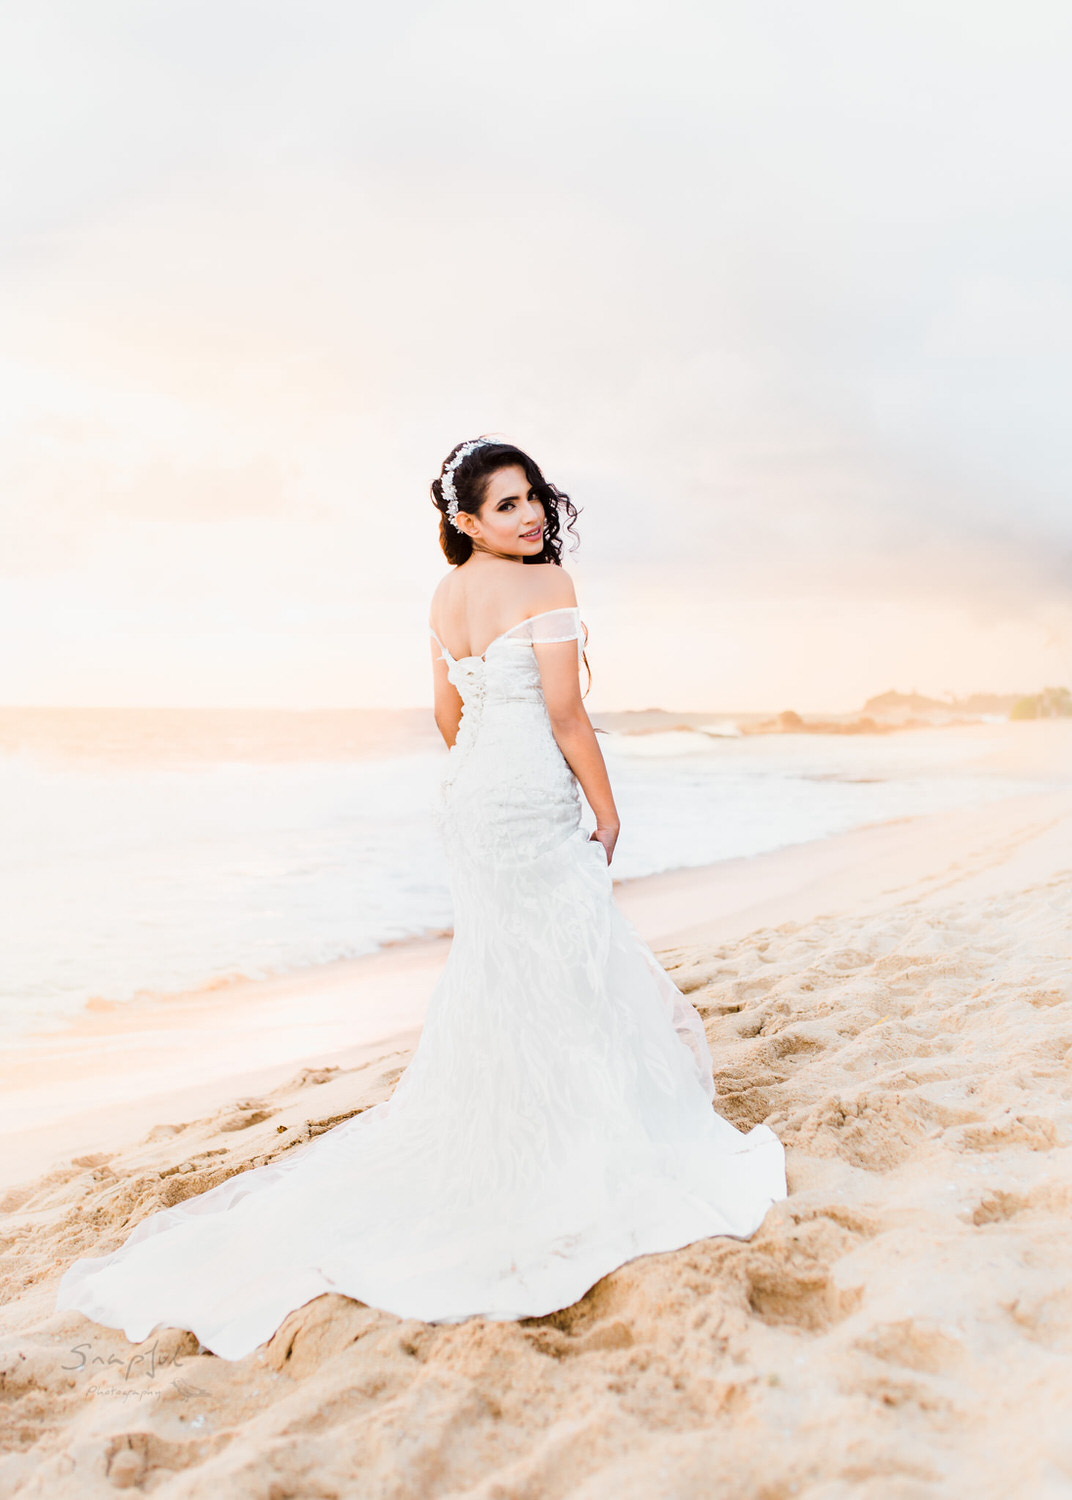 Stunning bride poses at sunset on Sri Lankan beach